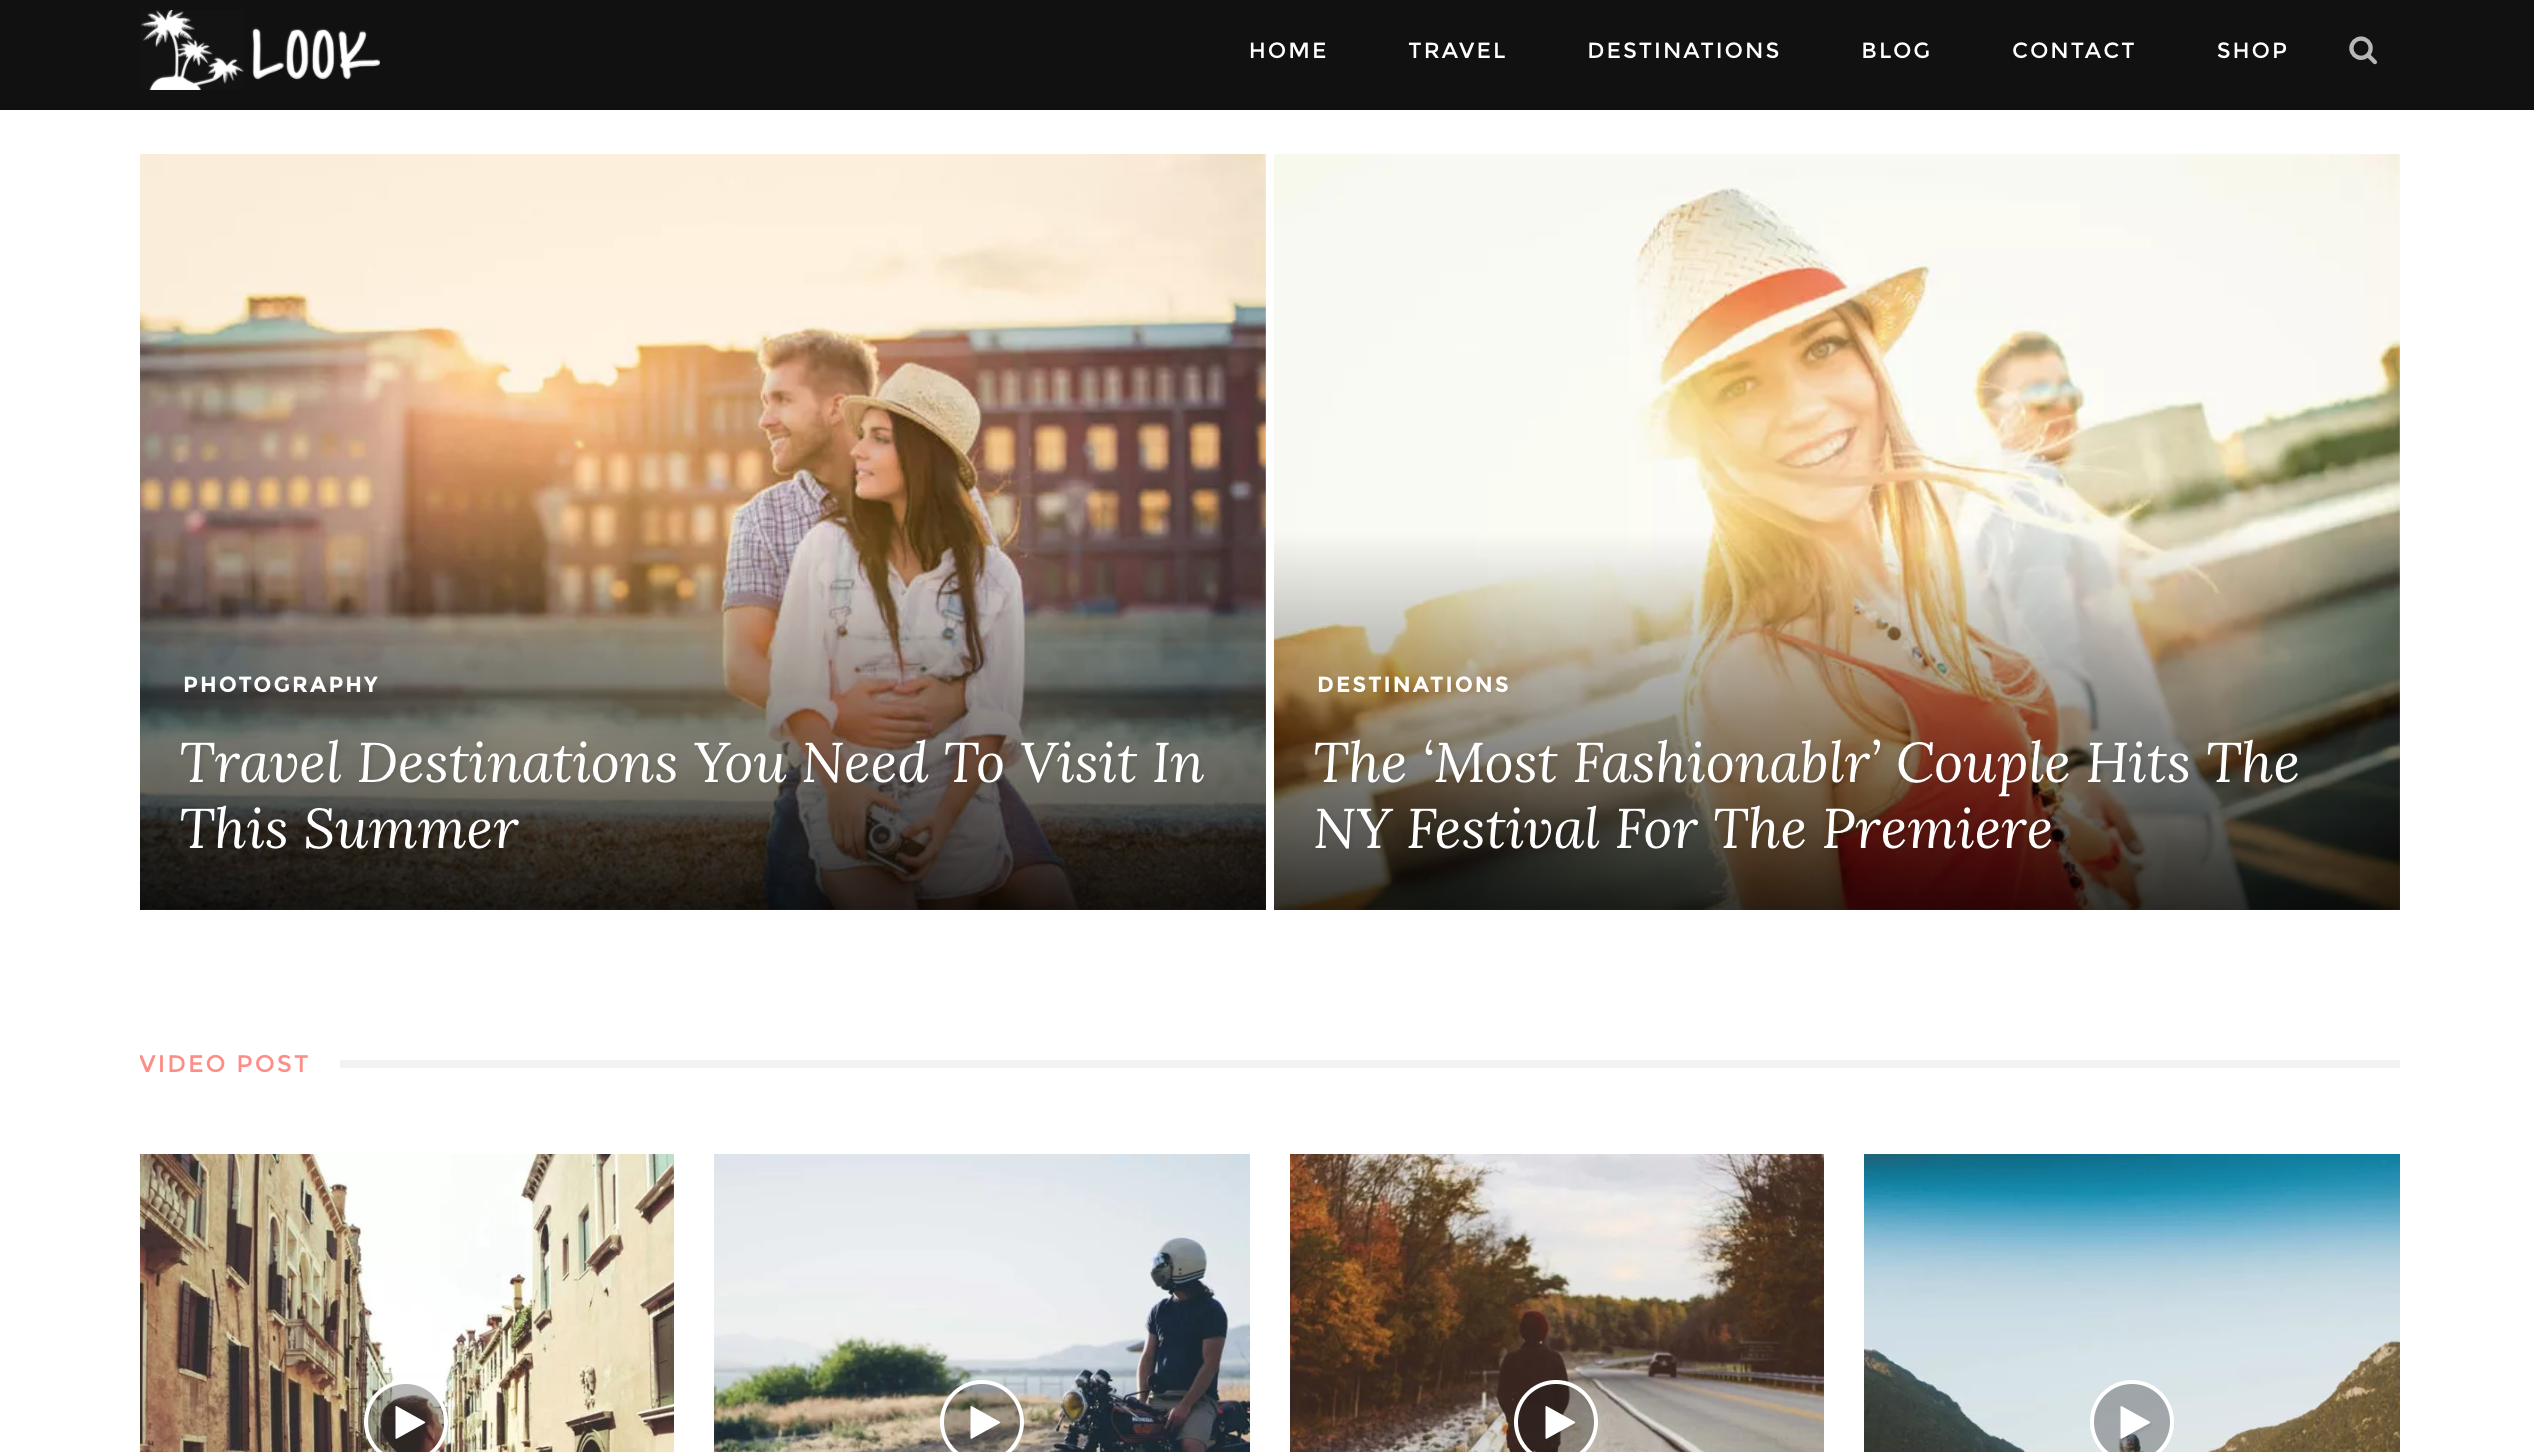 Look WordPress Theme with the travel theme setting applied.